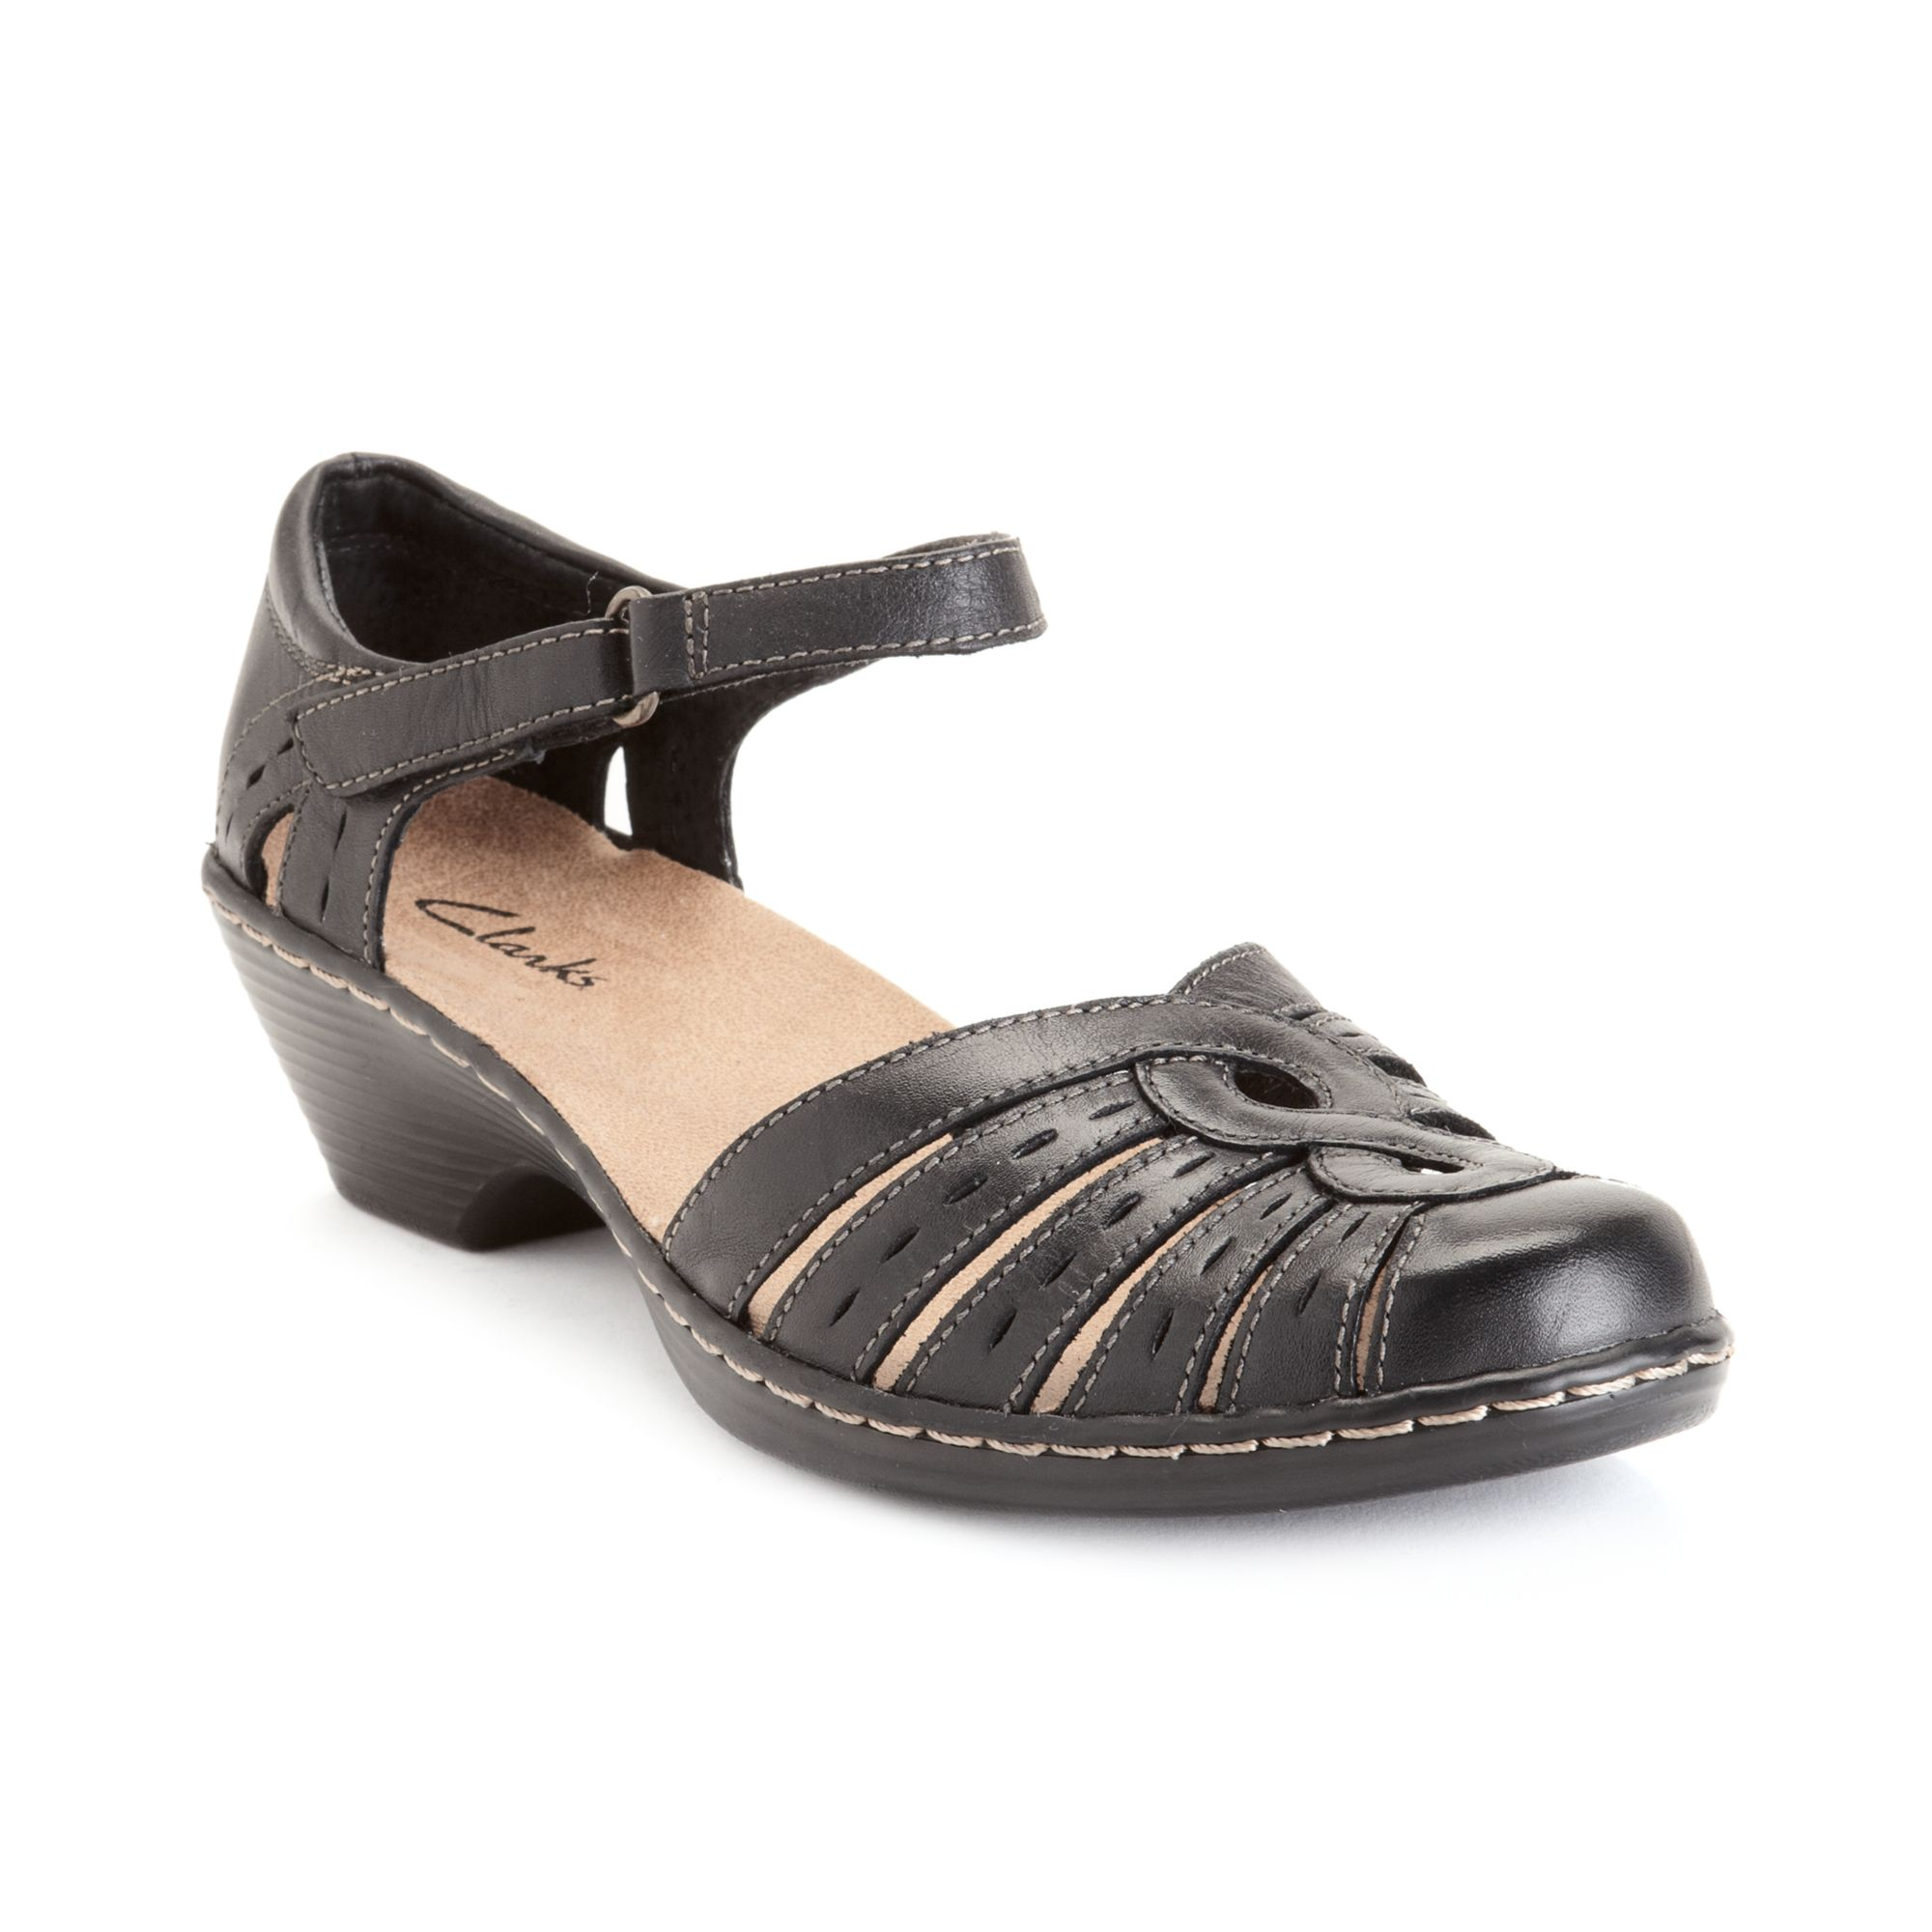 No matter the occasion or ensemble, these Raissa sandals are always a fashionable choice. From Nine West.